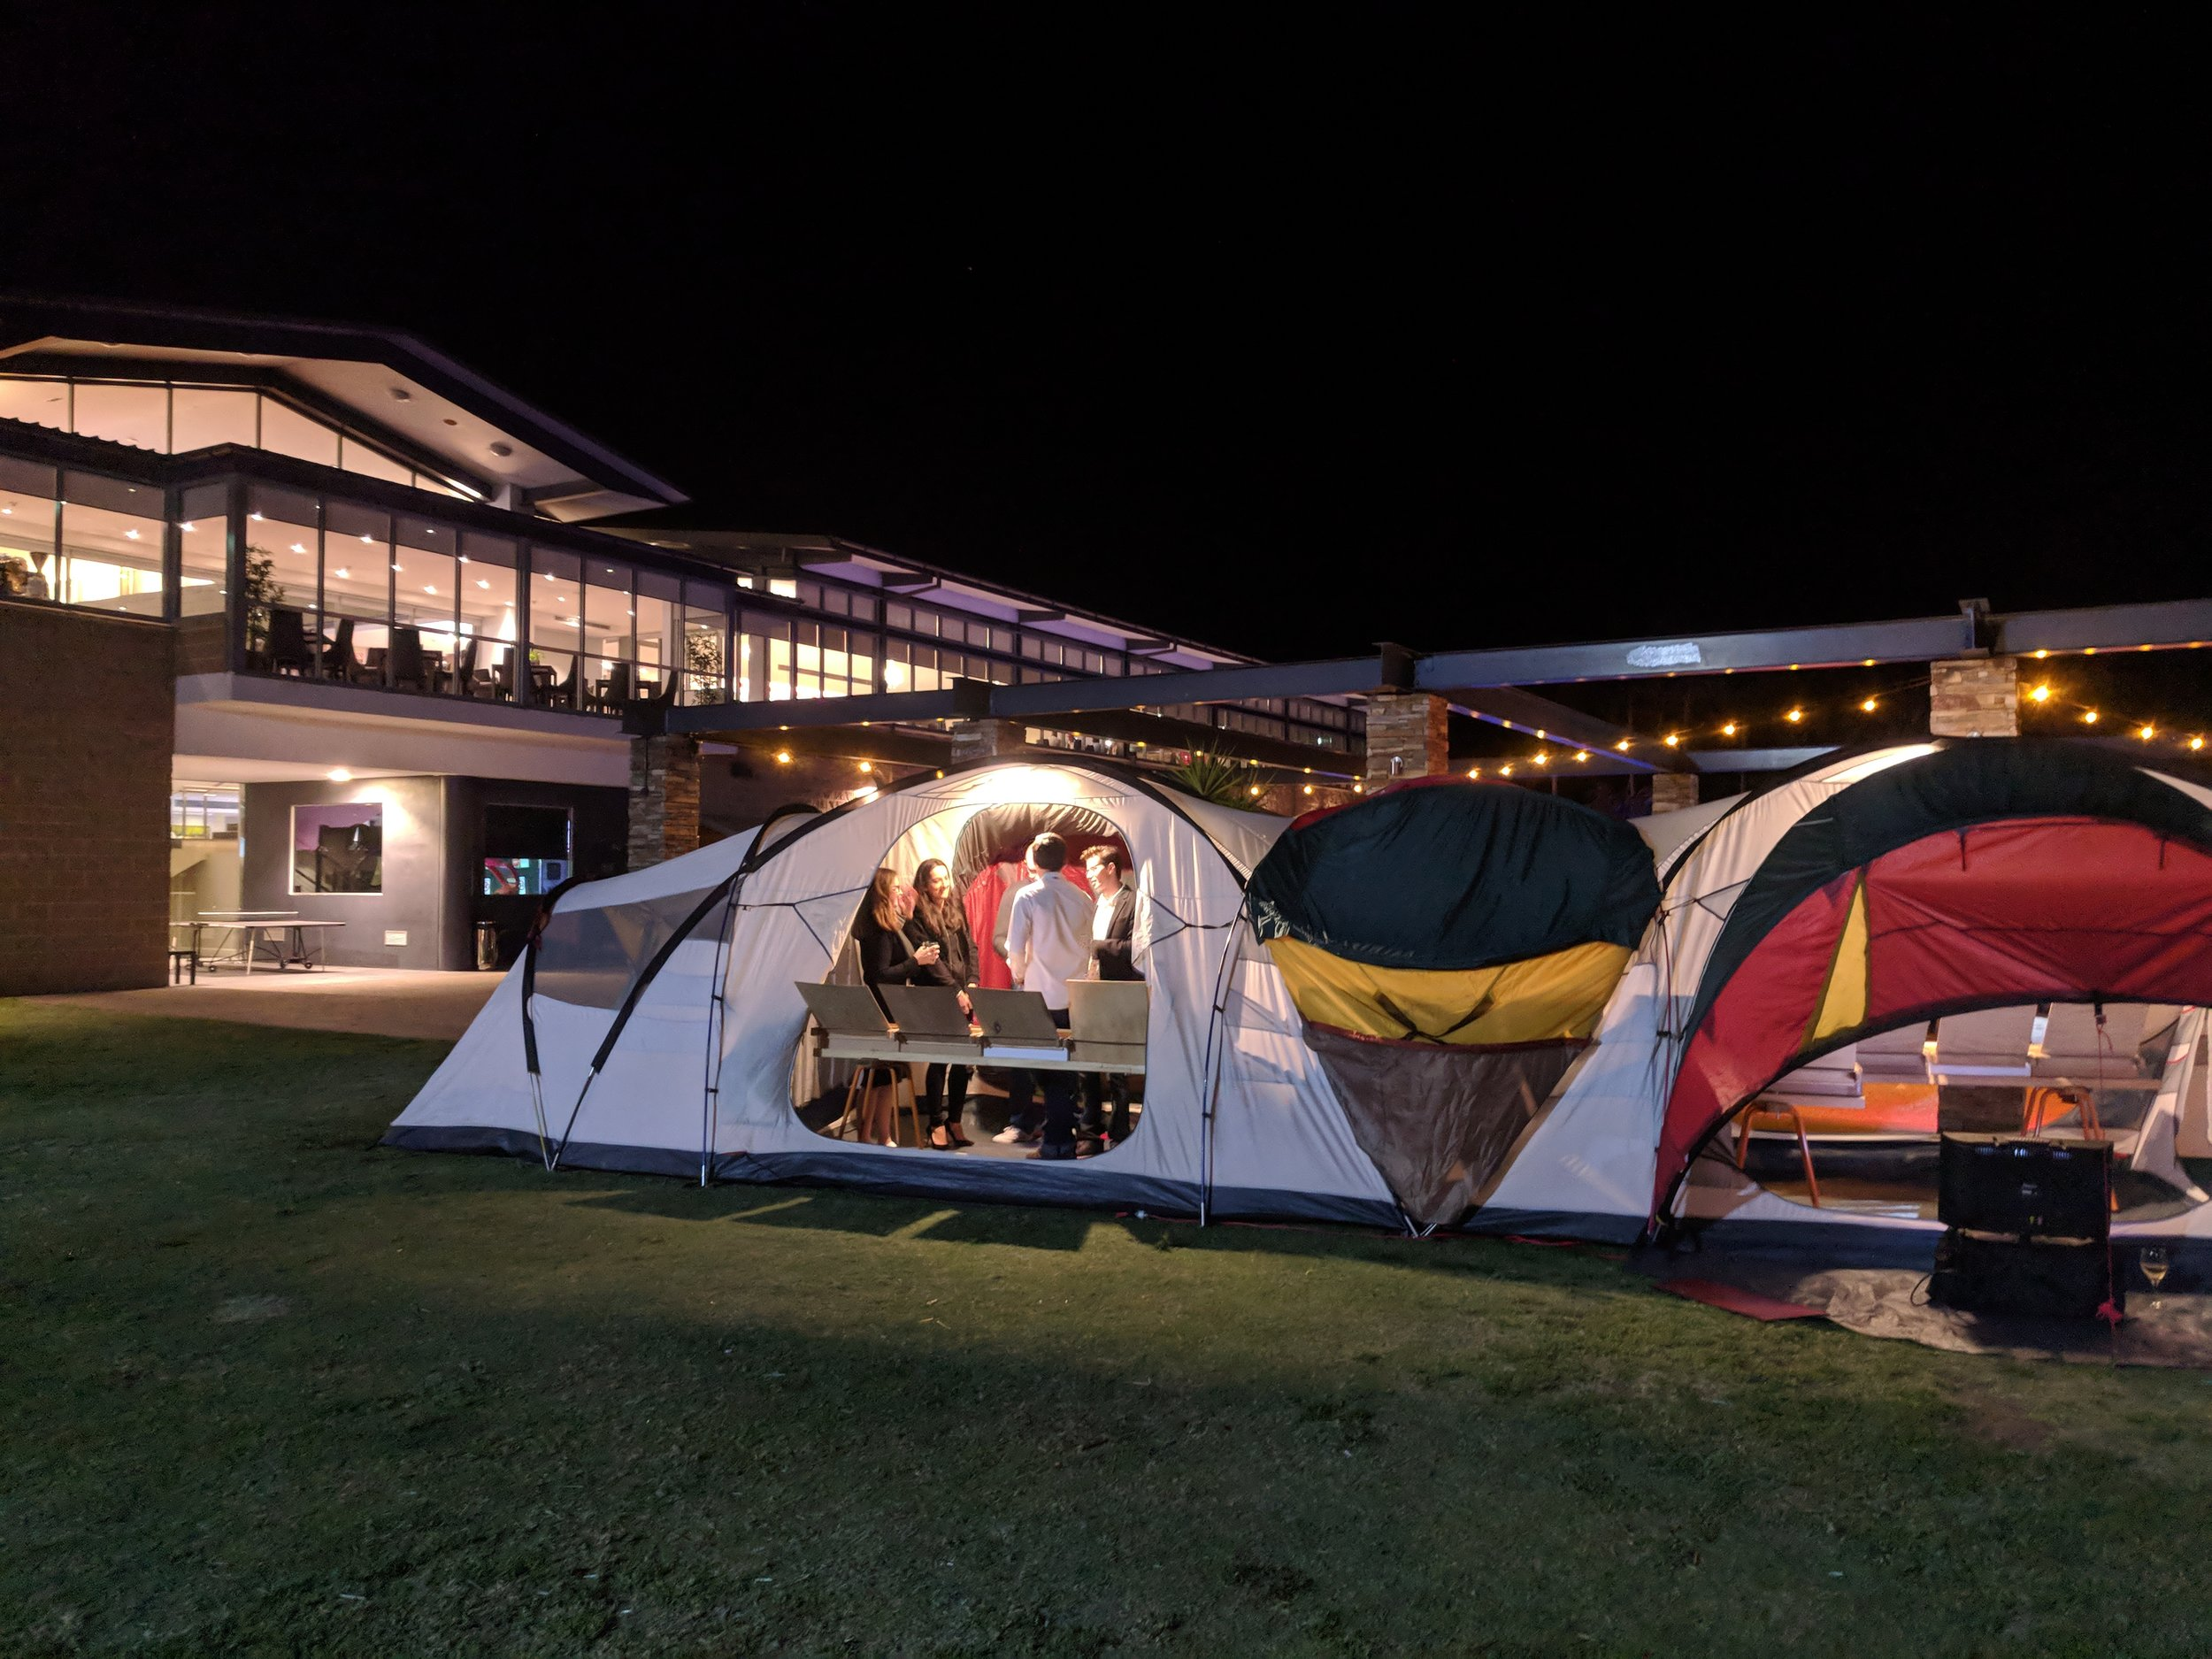 Crowne Hotel - tent looks right at home